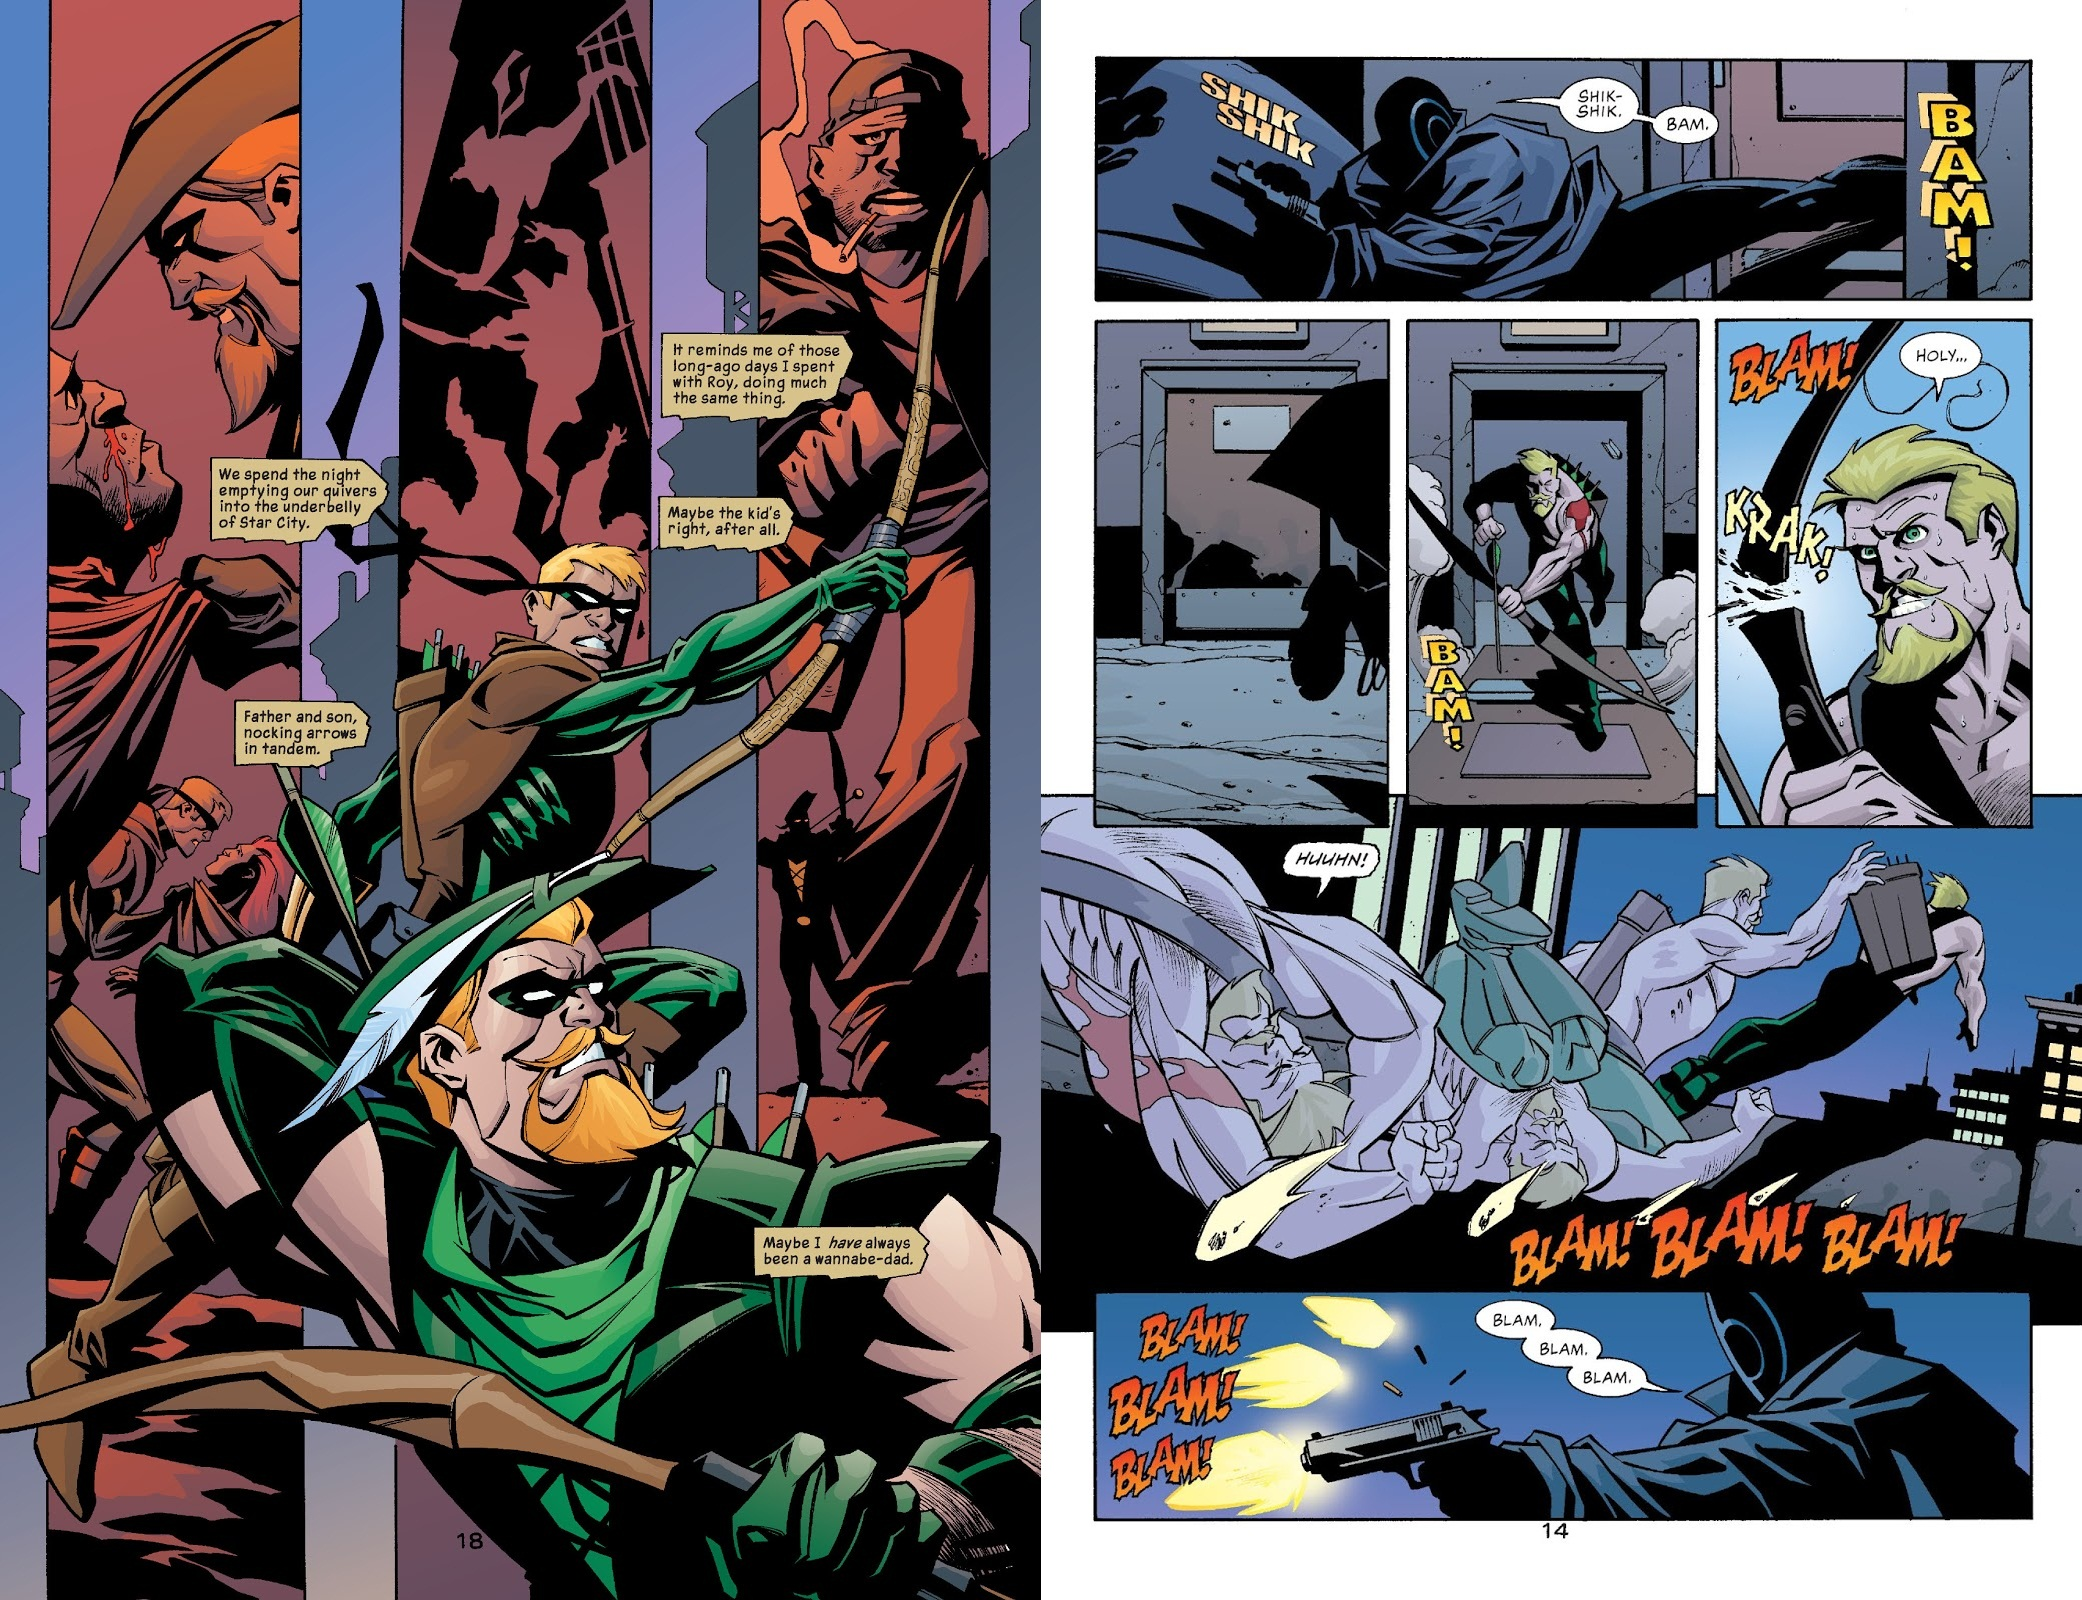 Green Arrow Sounds of Violence review